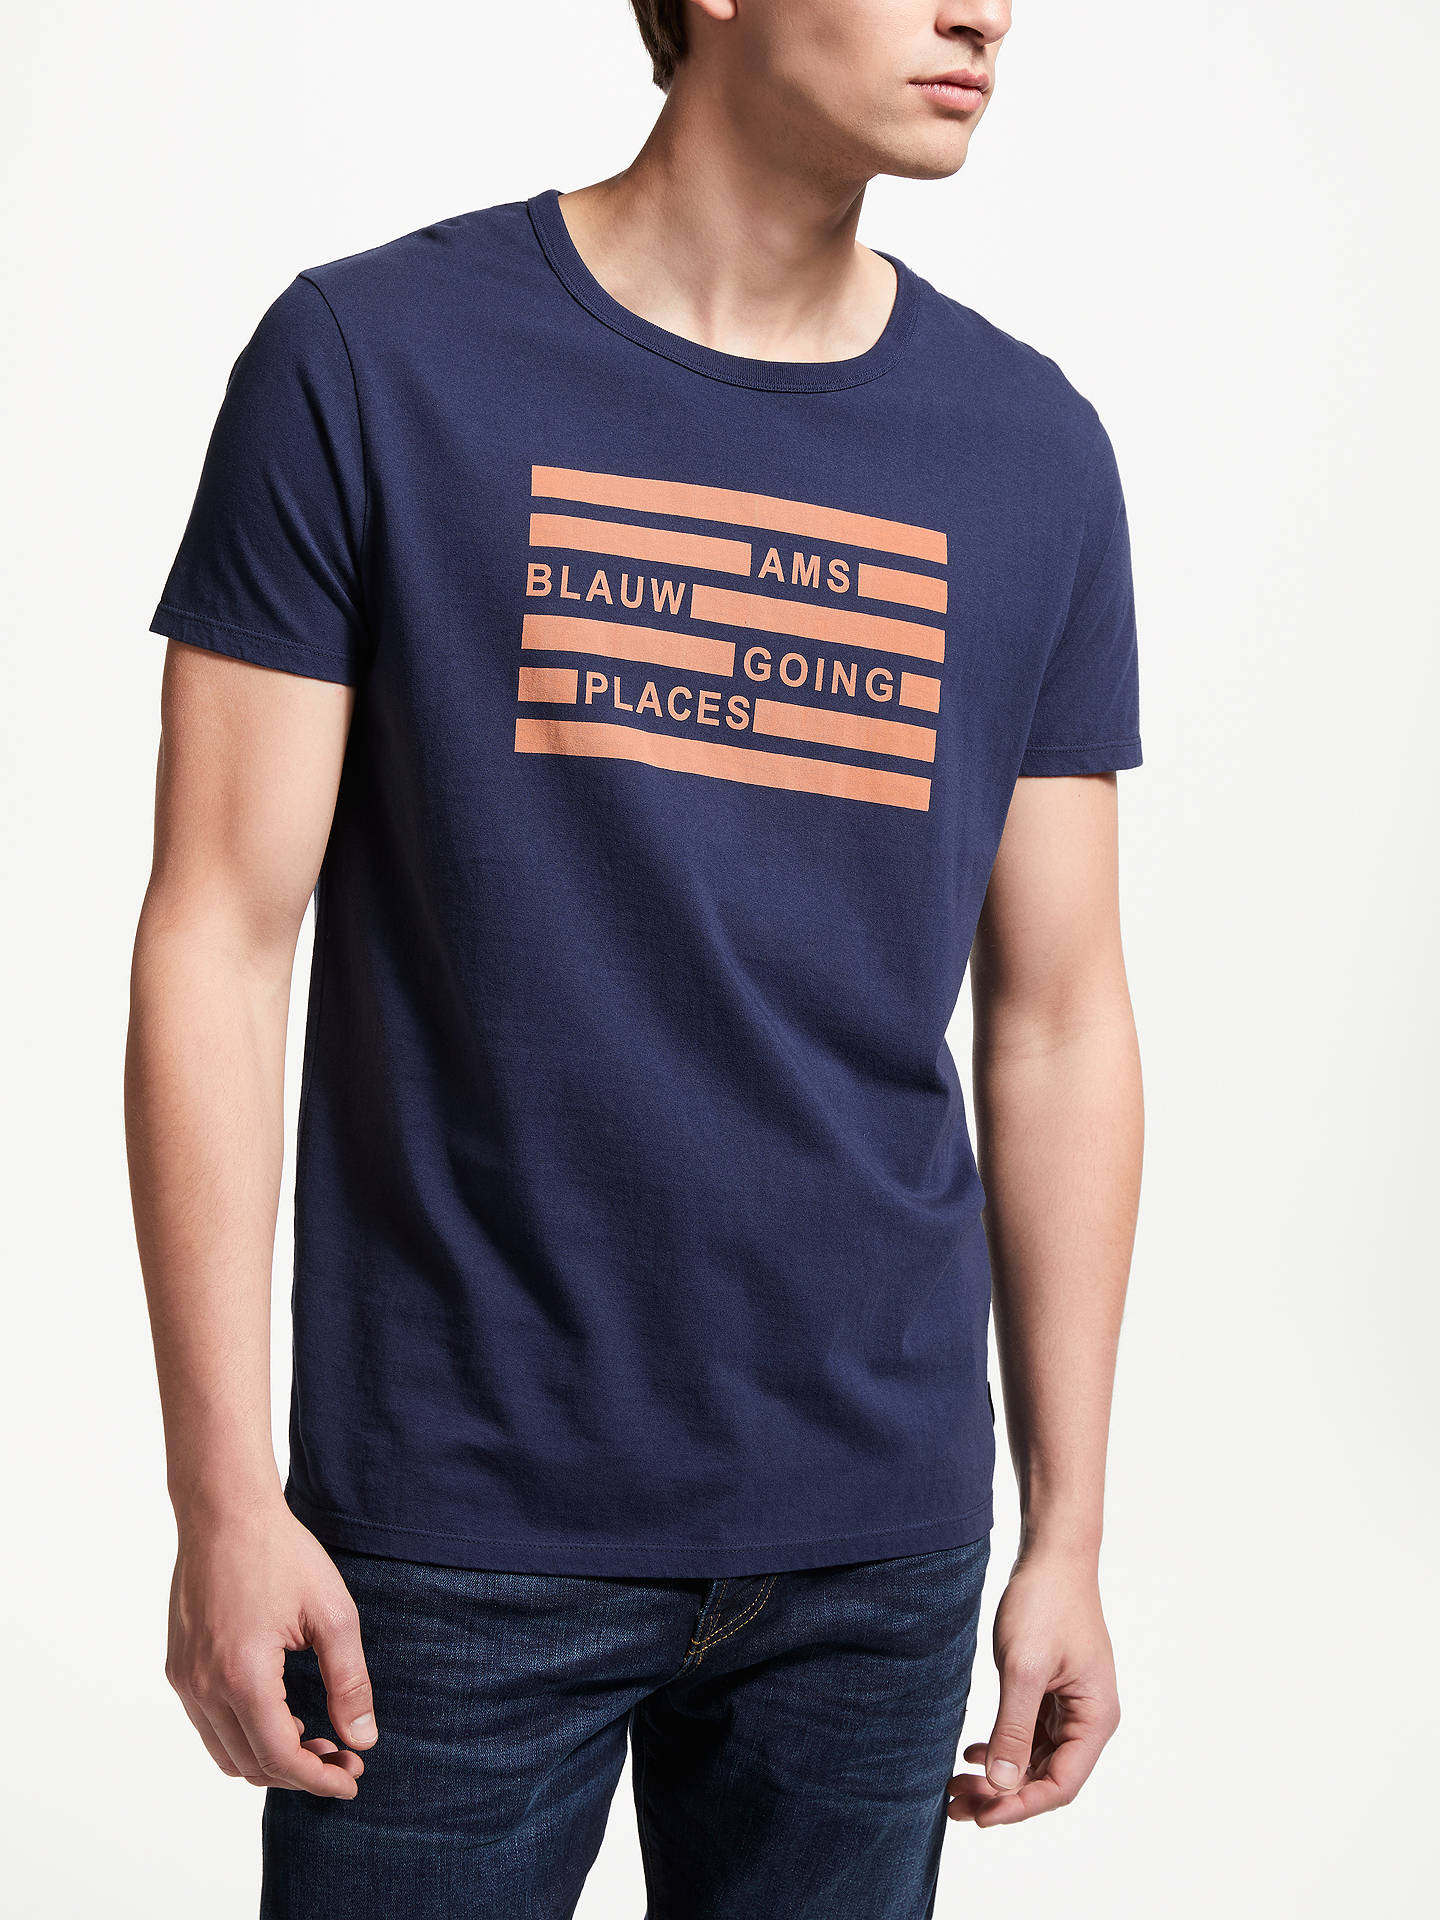 Buy Scotch & Soda Ams Blauw Graphic T-Shirt, Blue, M Online at johnlewis.com